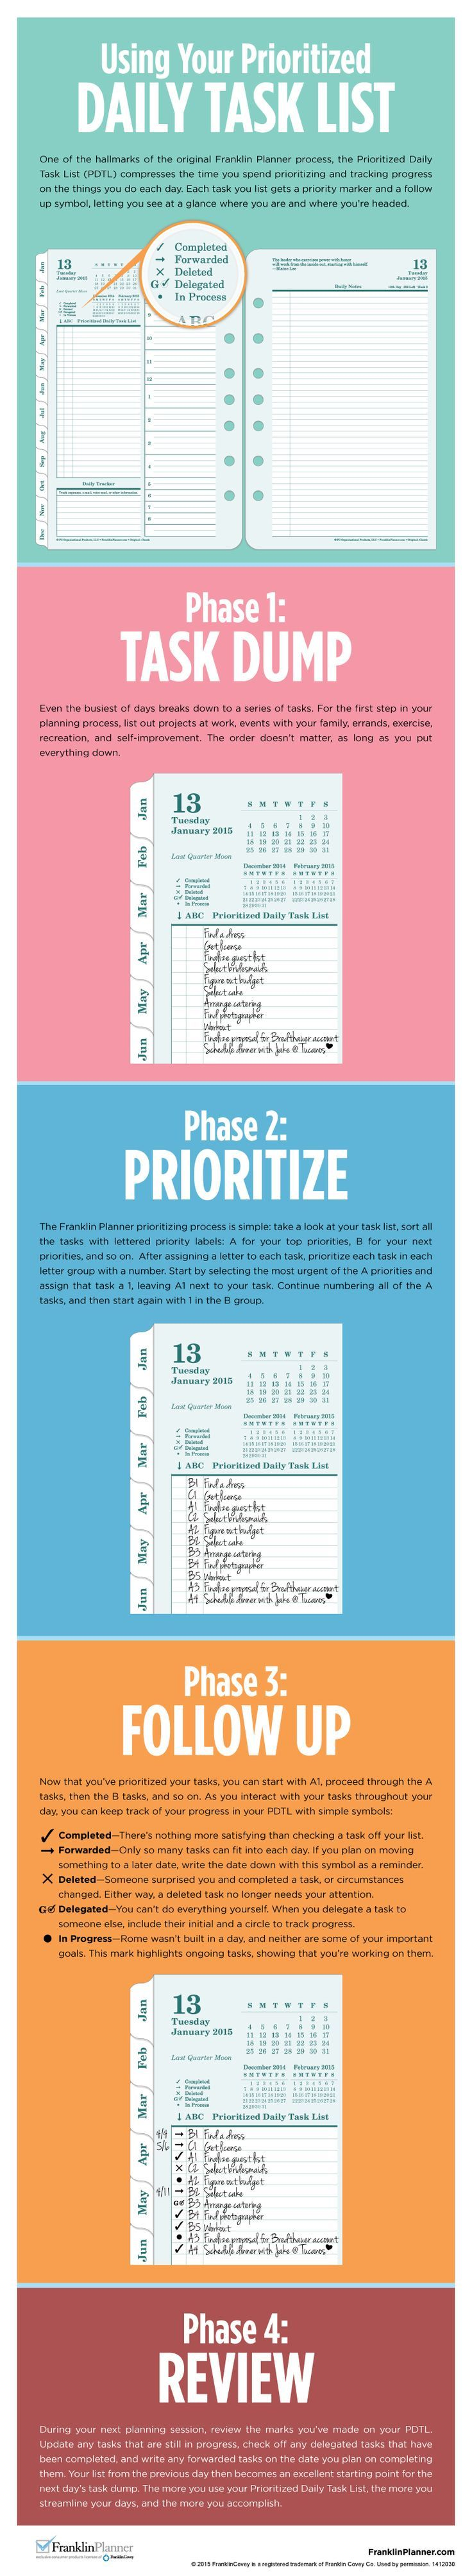 Your Refresher's Course: How to Use the FranklinPlanner System